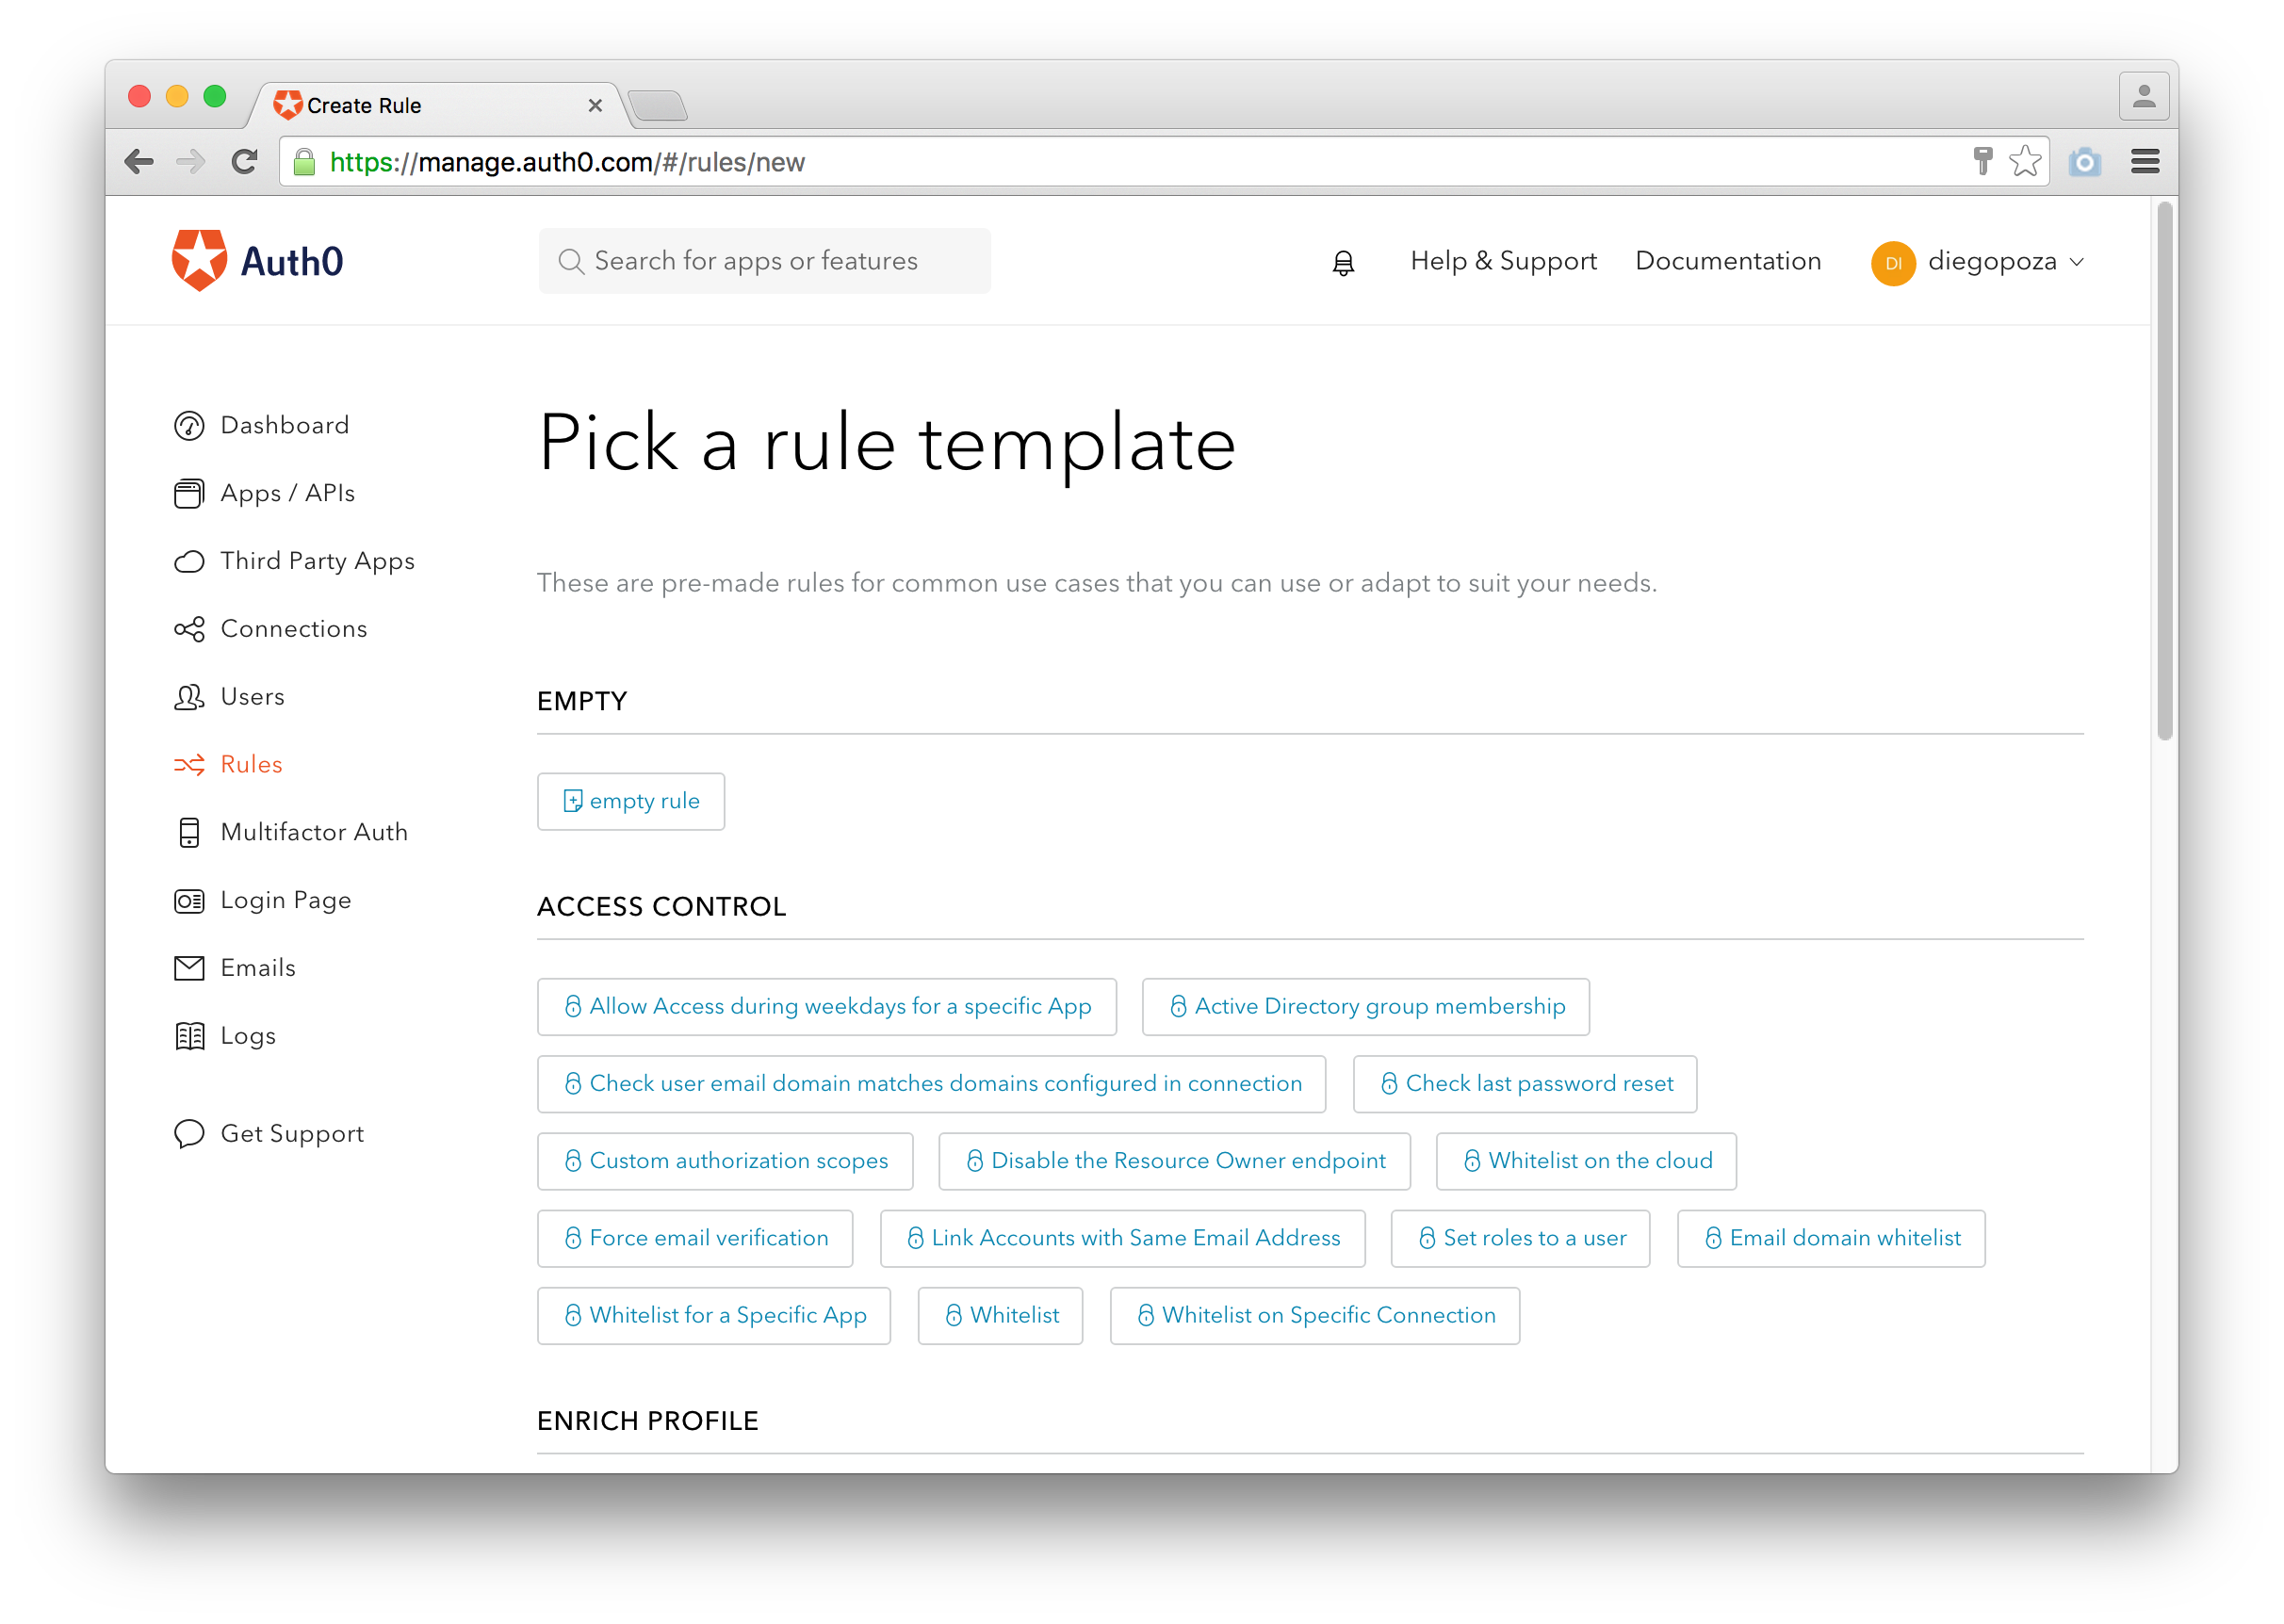 Creating a new rule using templates